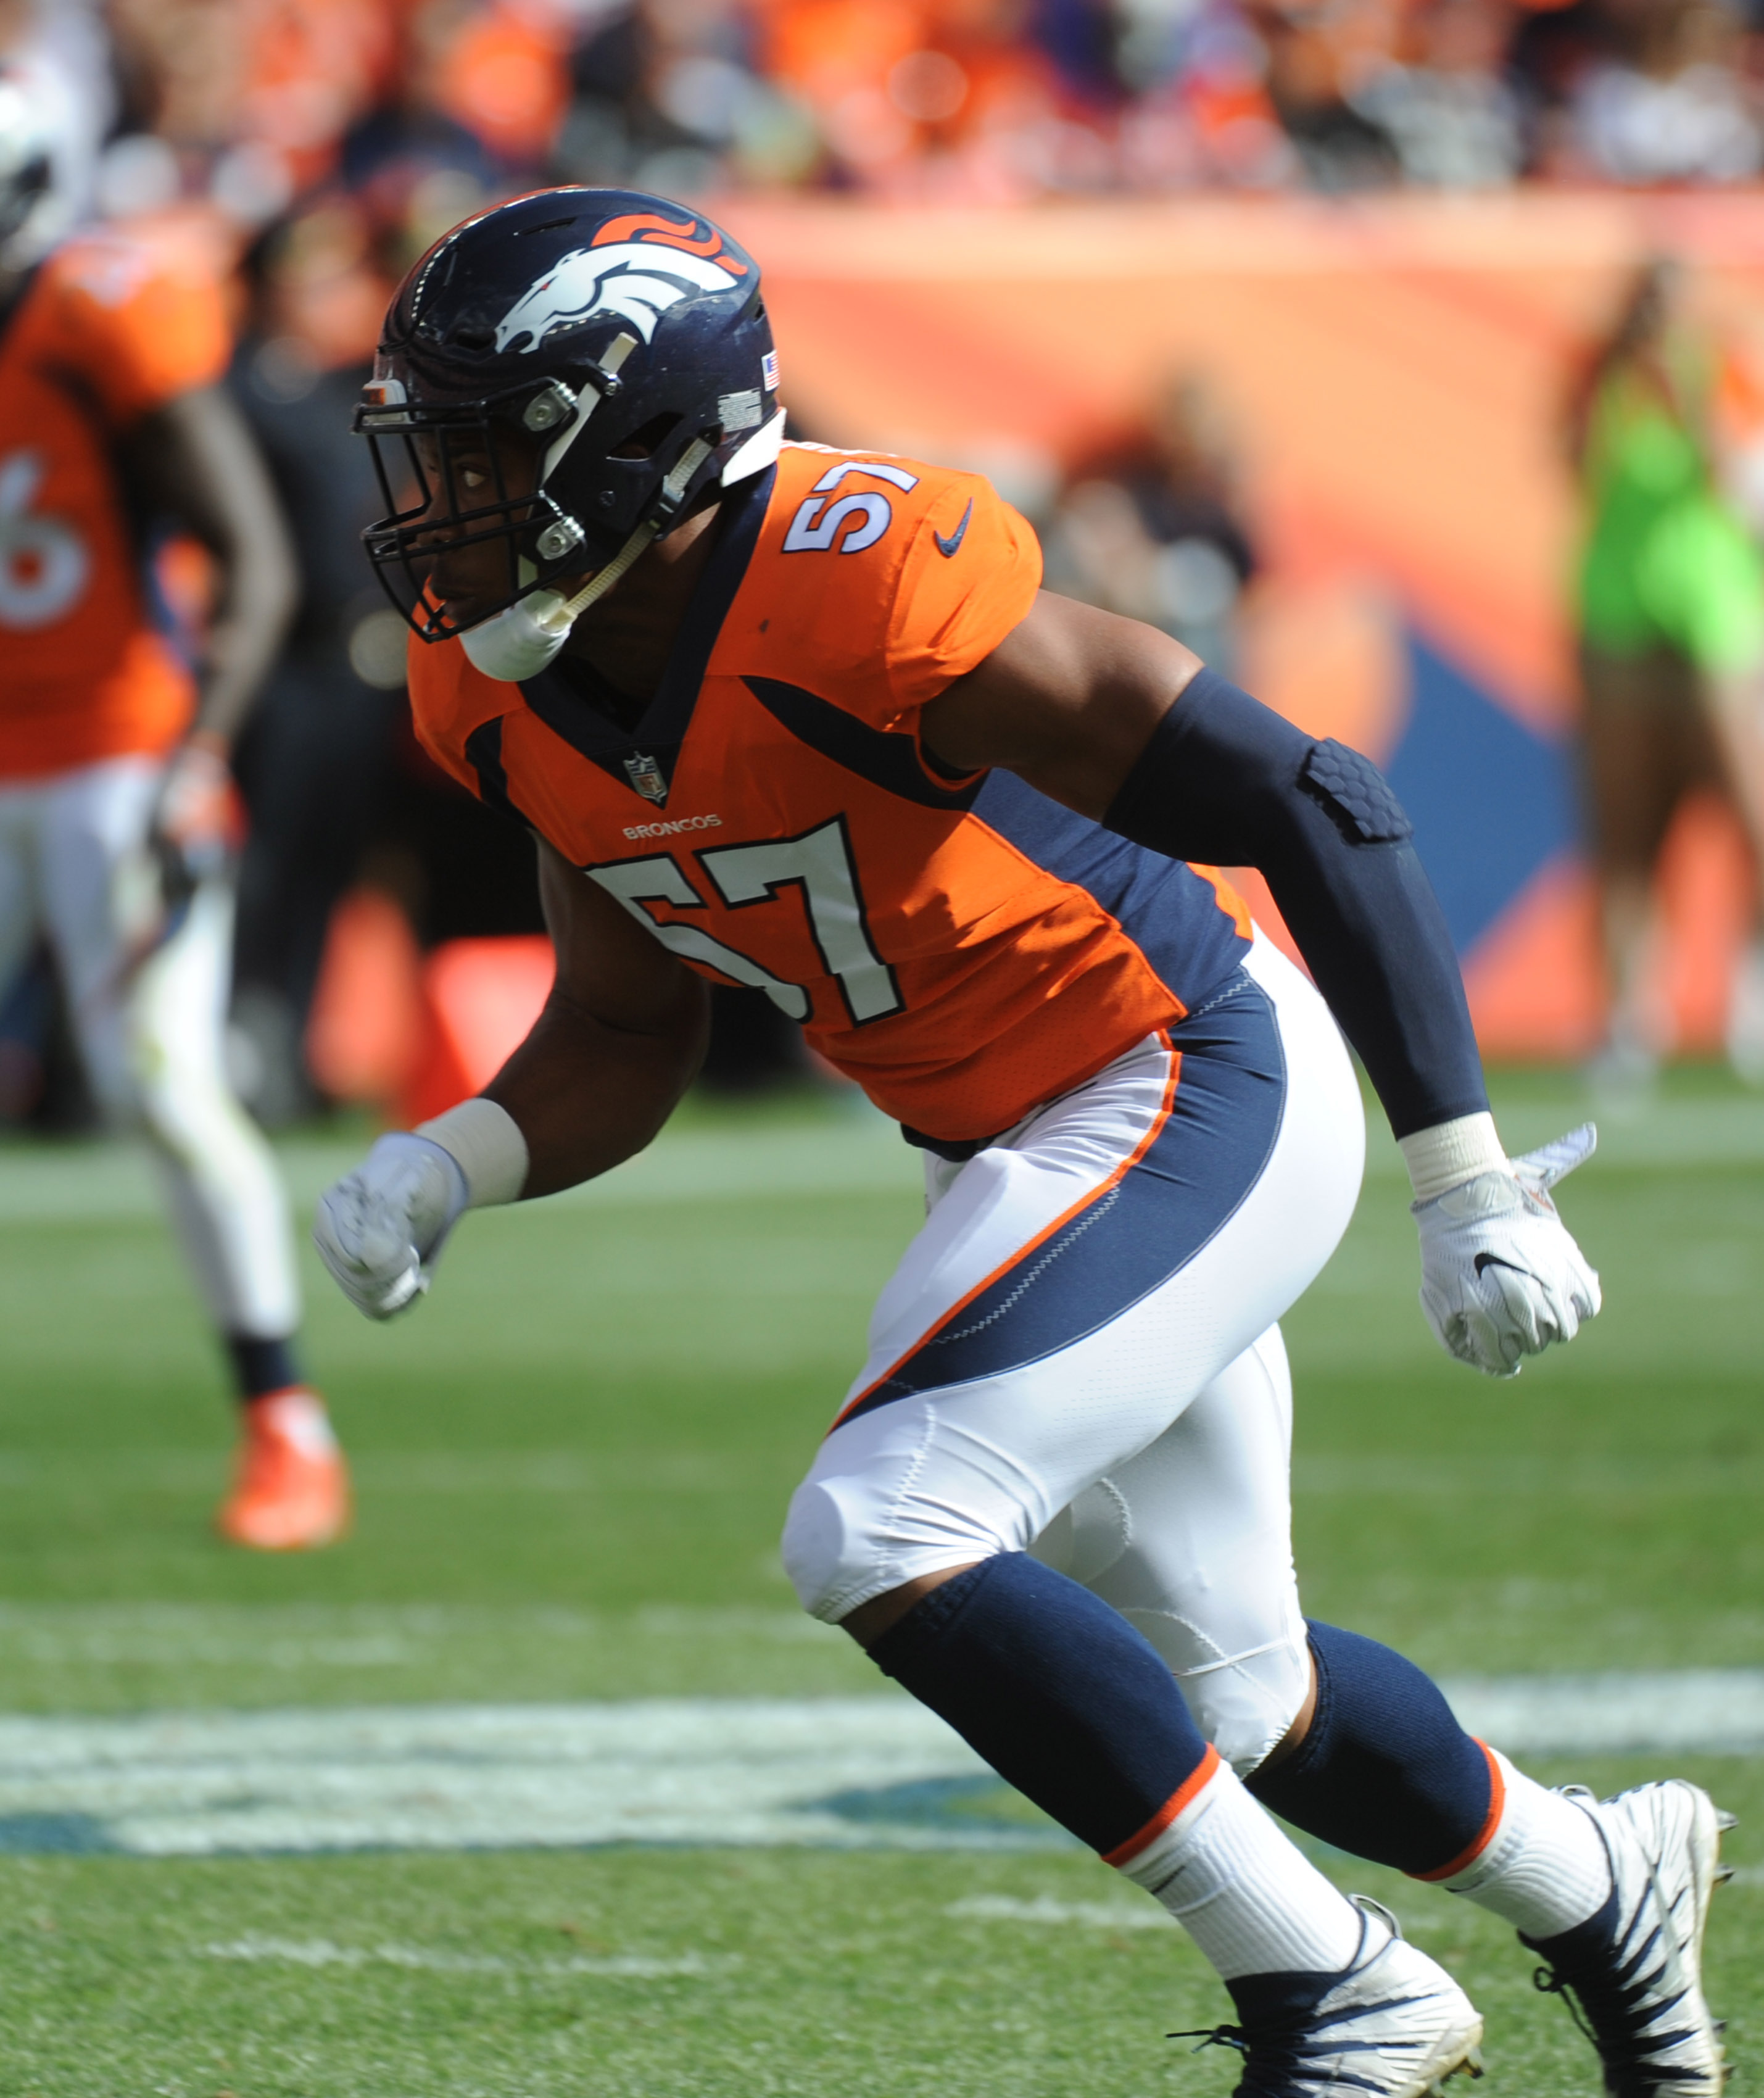 DeMarcus Walker looks ready to prove he belongs with the Broncos — and in the NFL